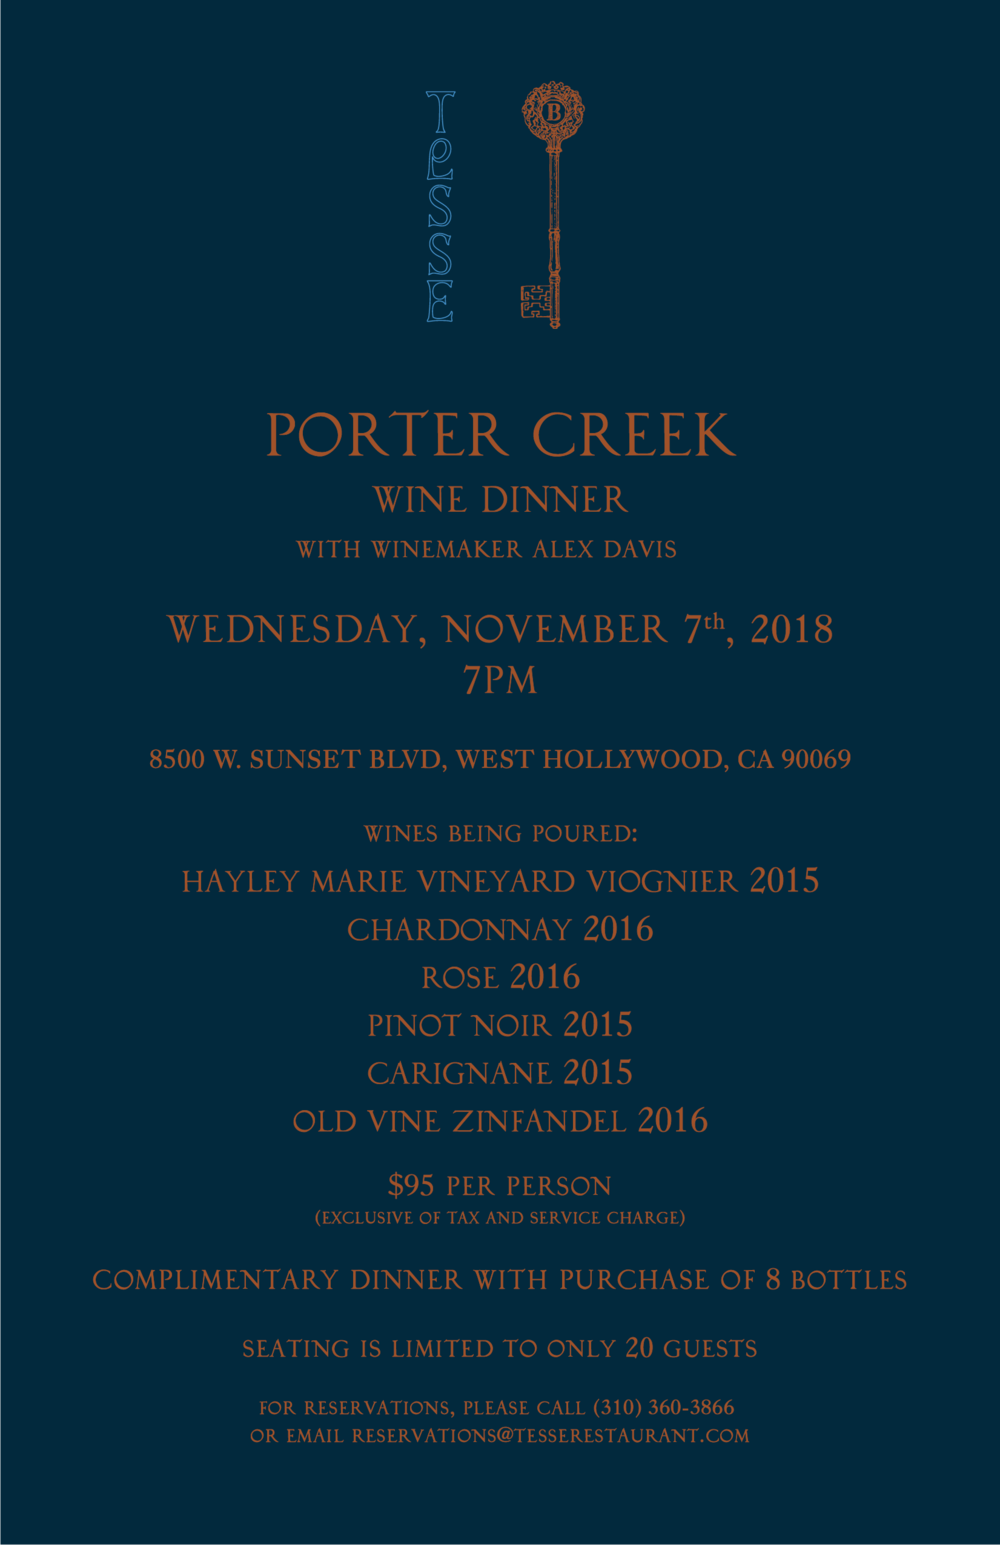 Porter Creek Wine Dinner Invite.png